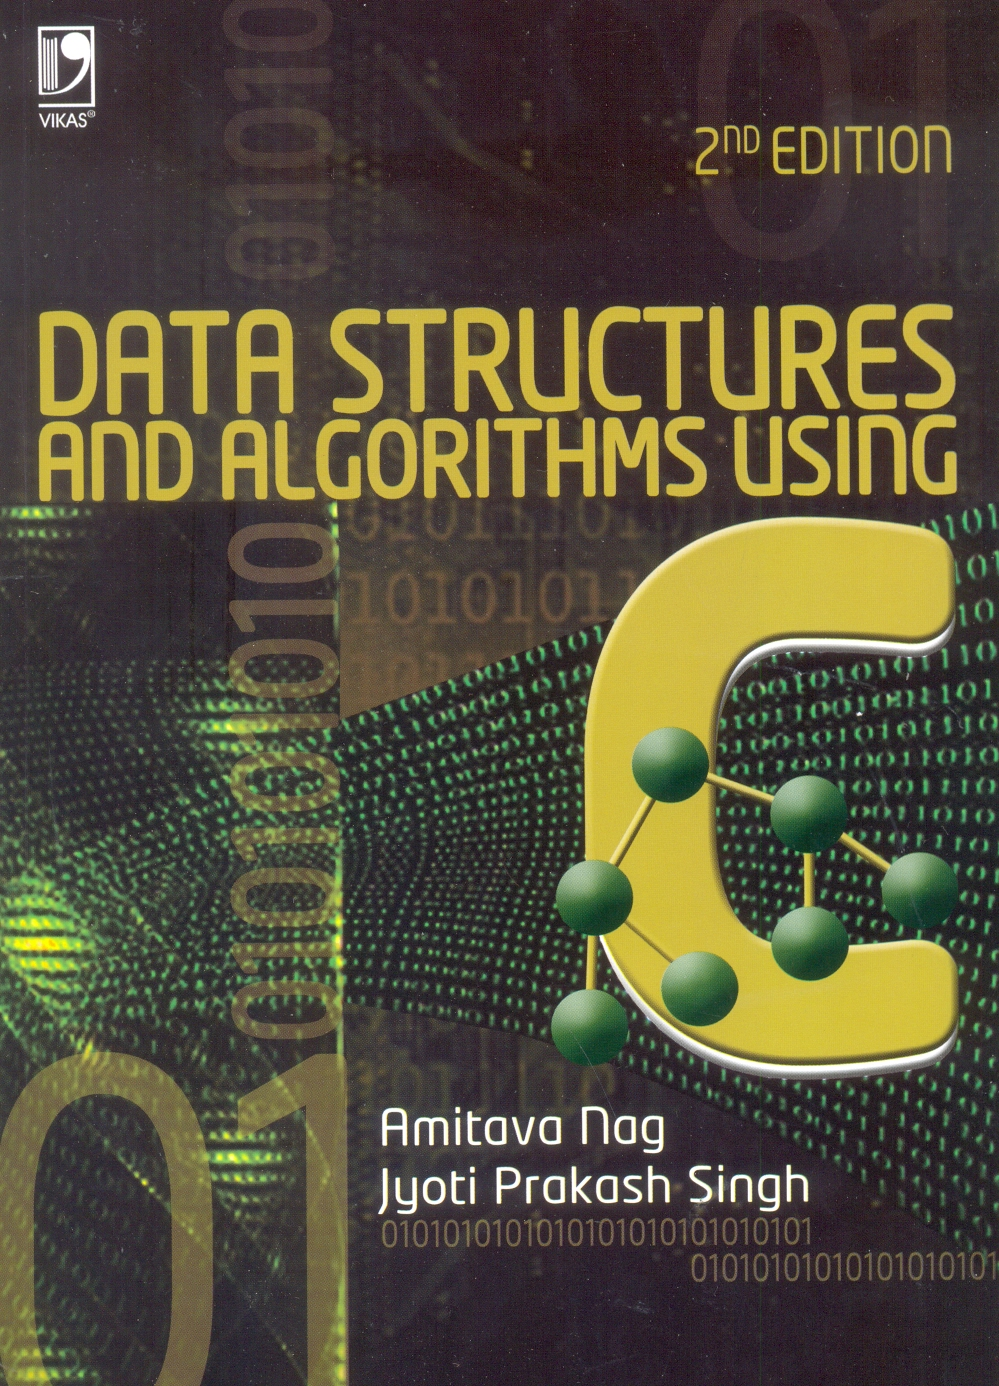 Data Structures and Algorithms Using C, 2/e  by Amitava Nag